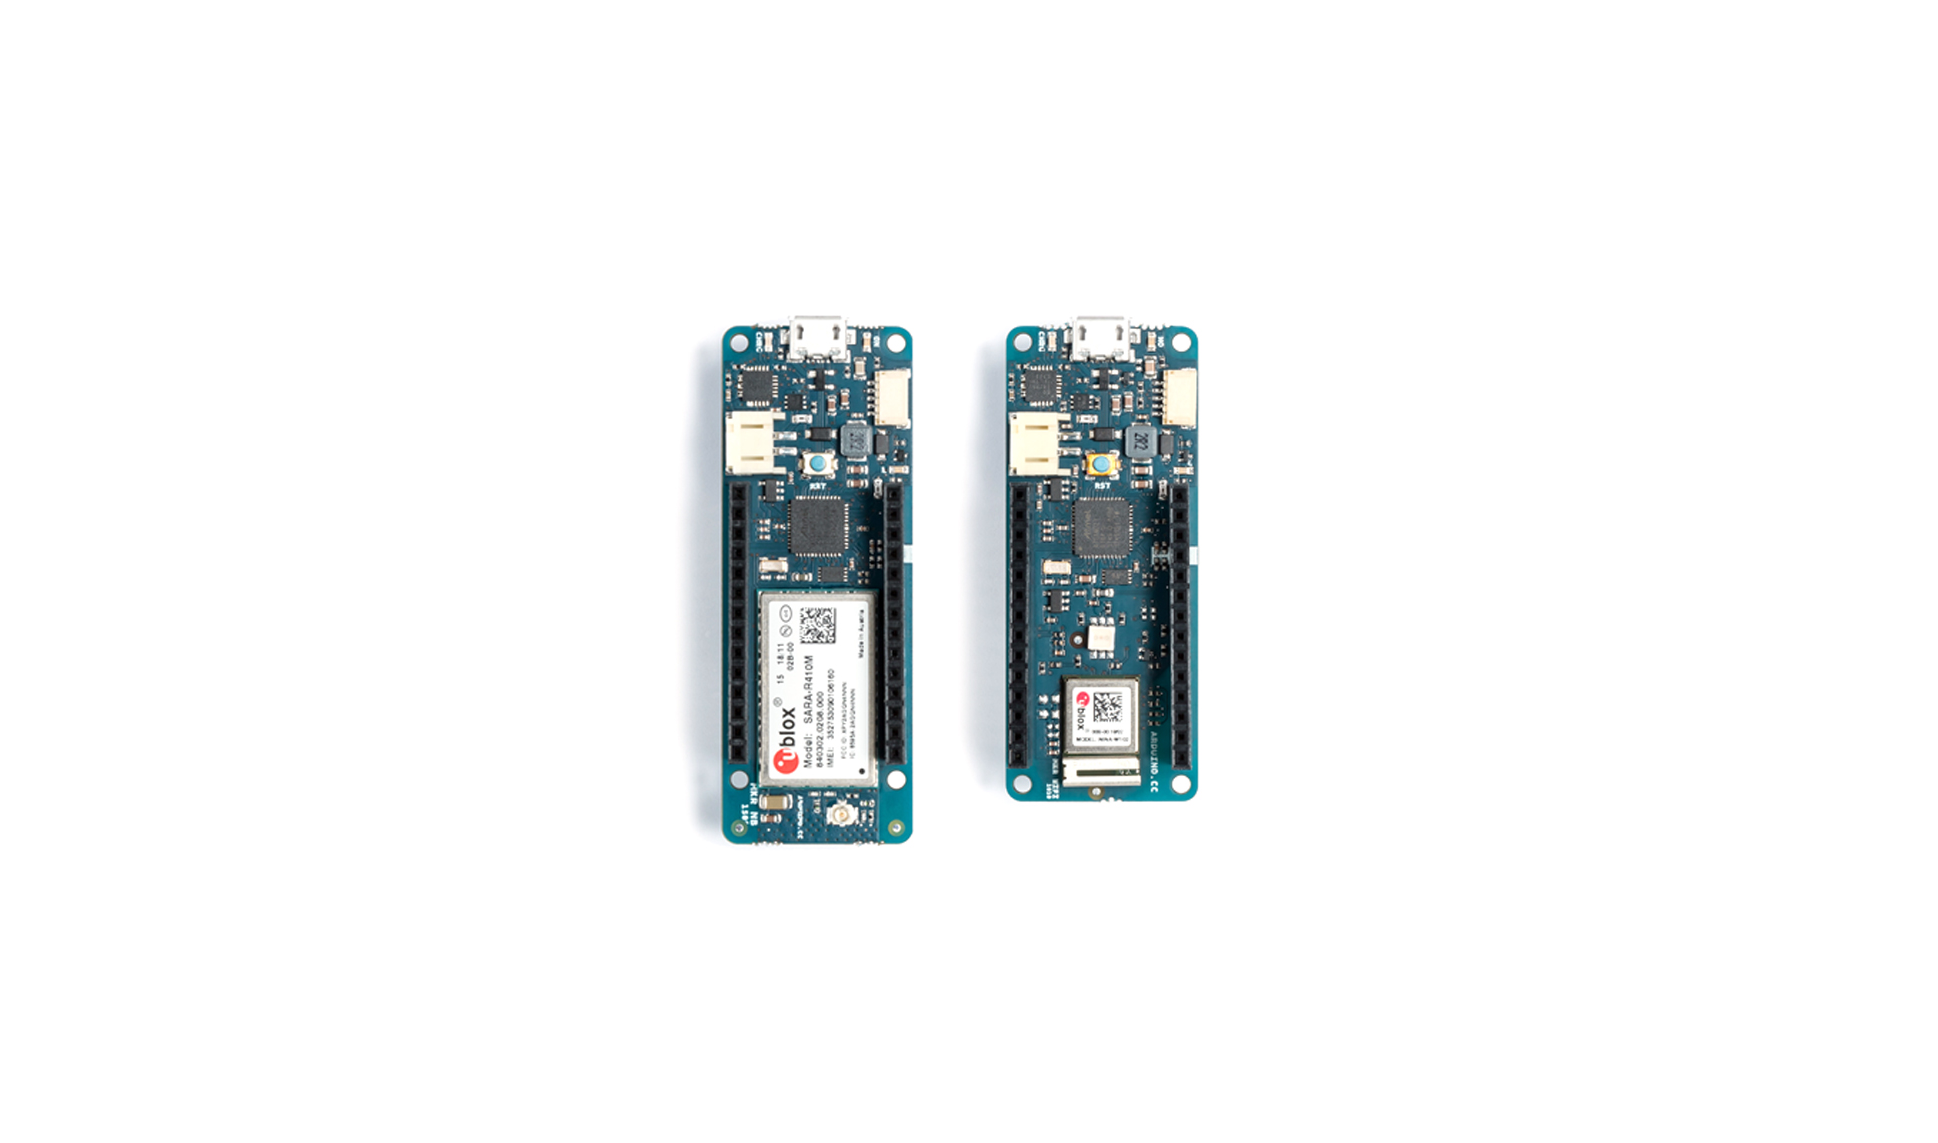 The MKR family gets bigger with two new IoT boards!